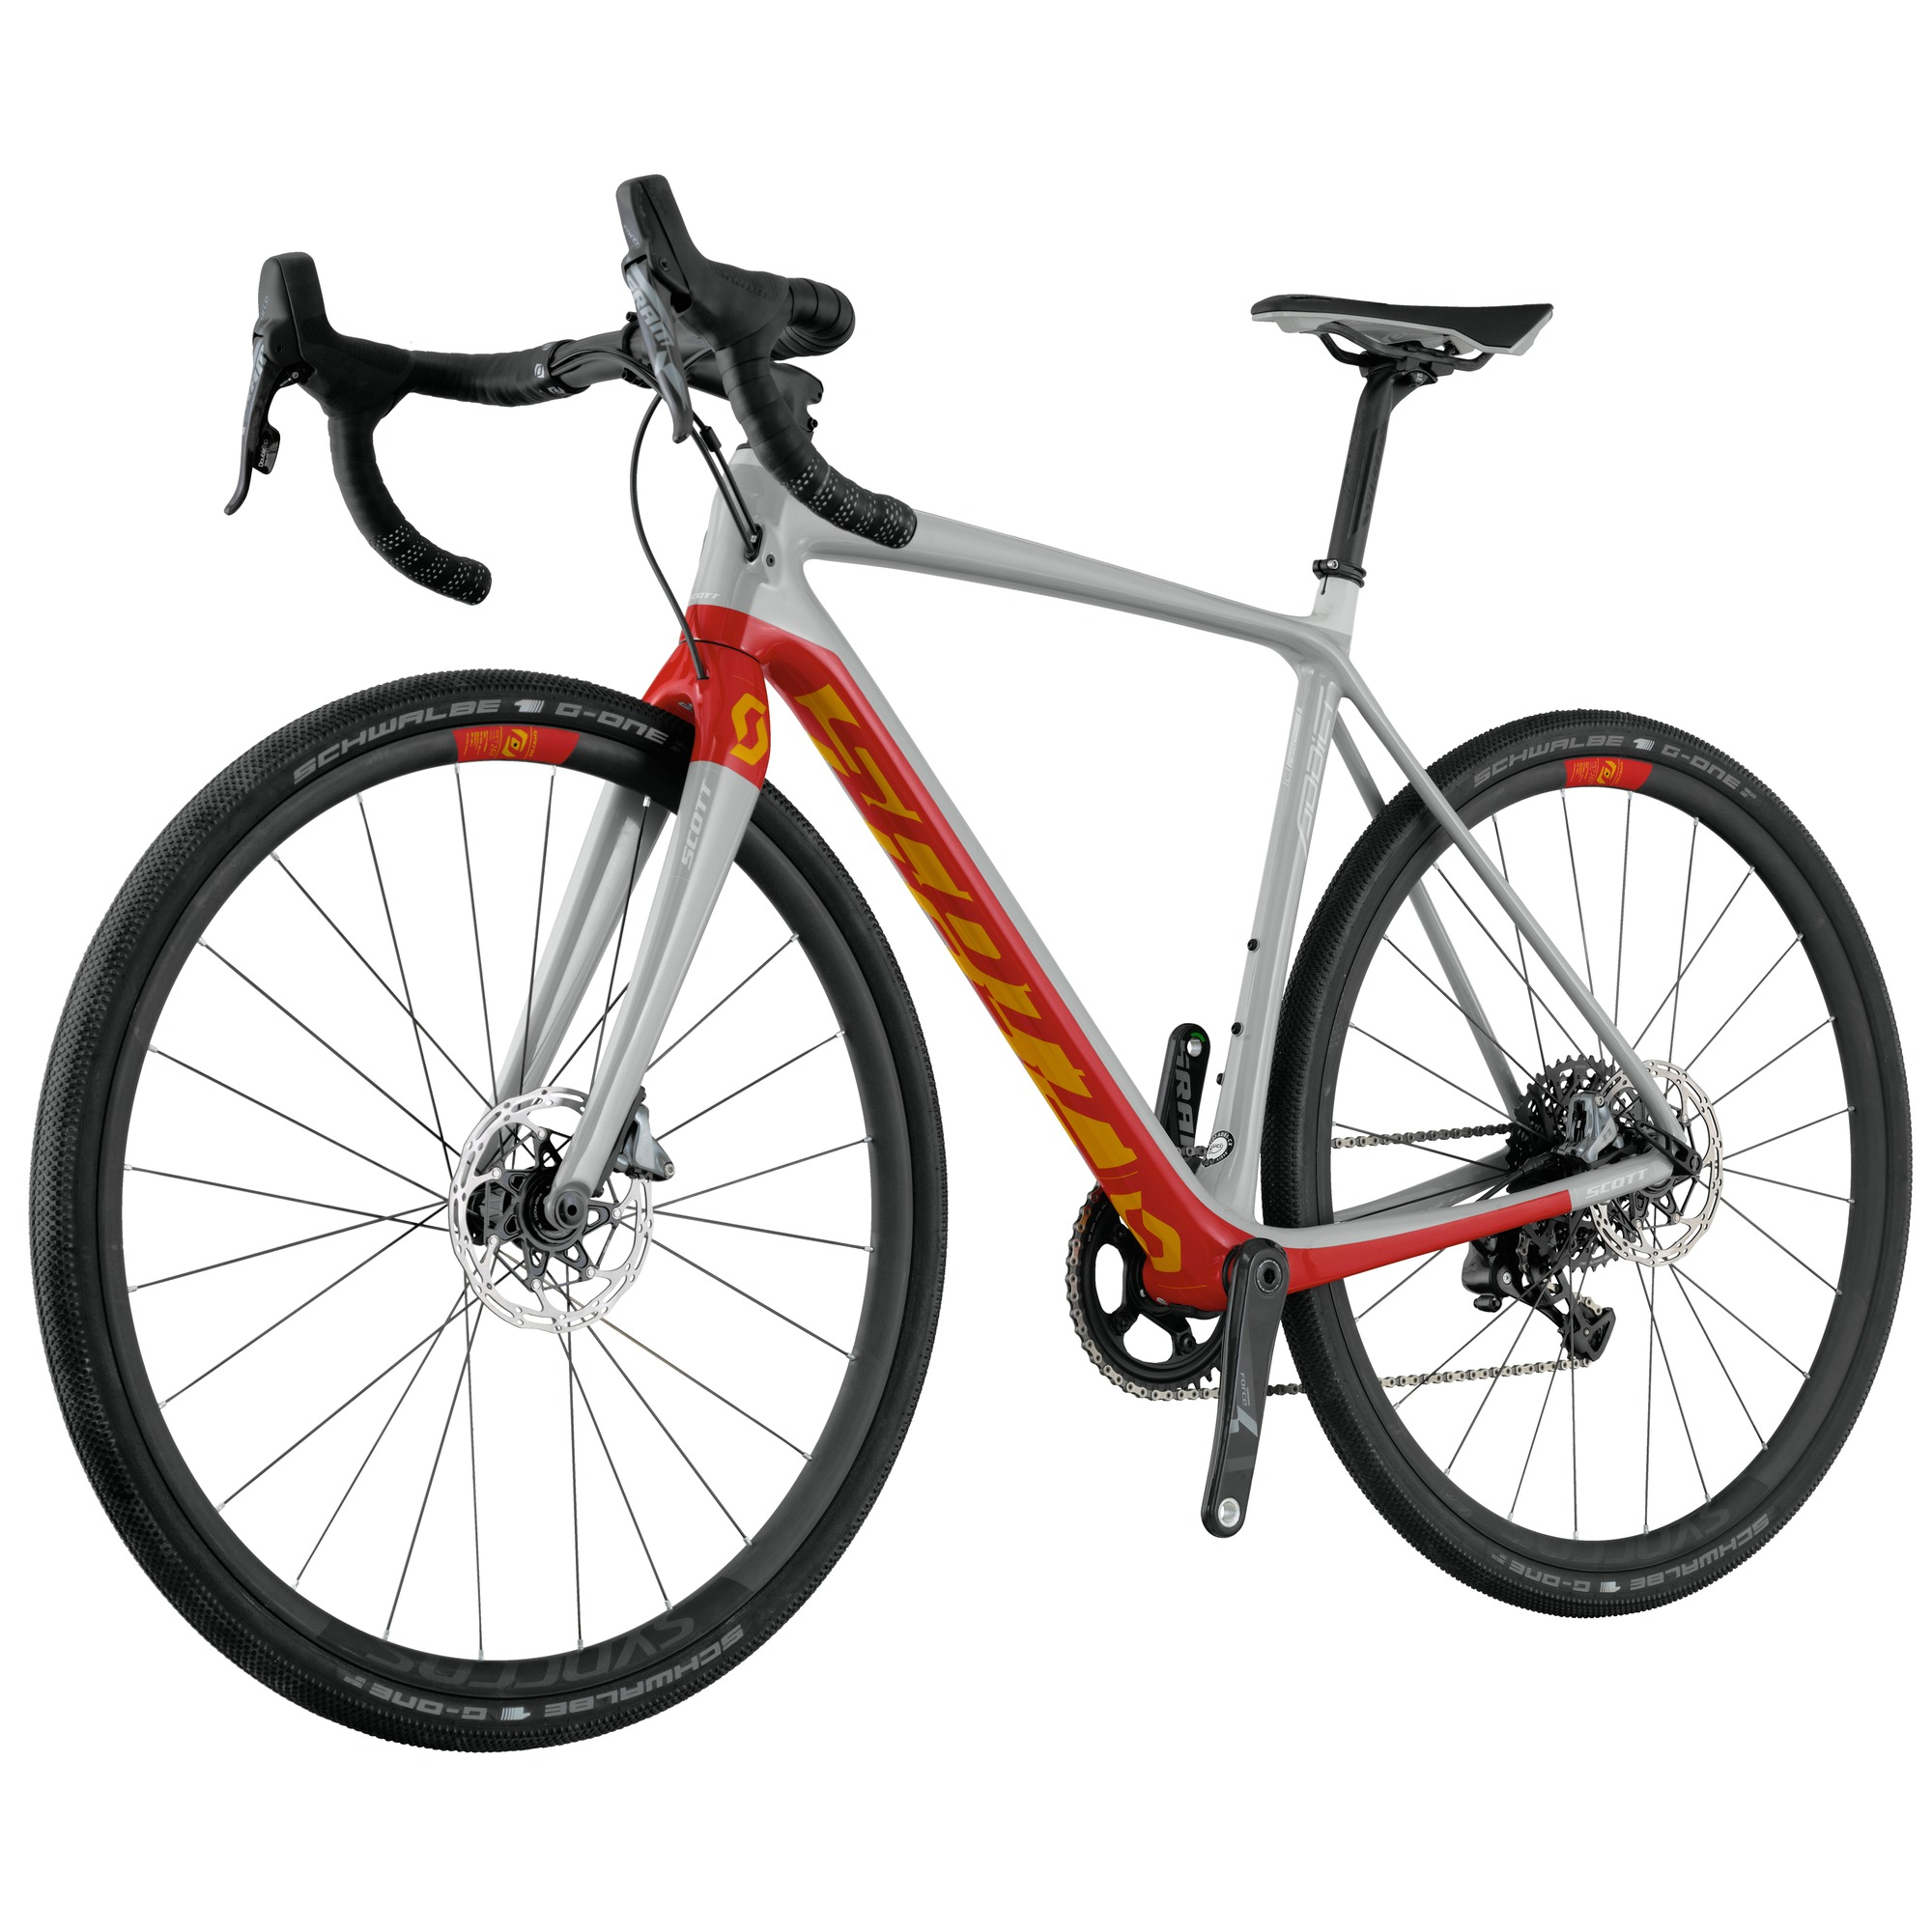 SCOTT Addict Gravel 10 Disc Bike